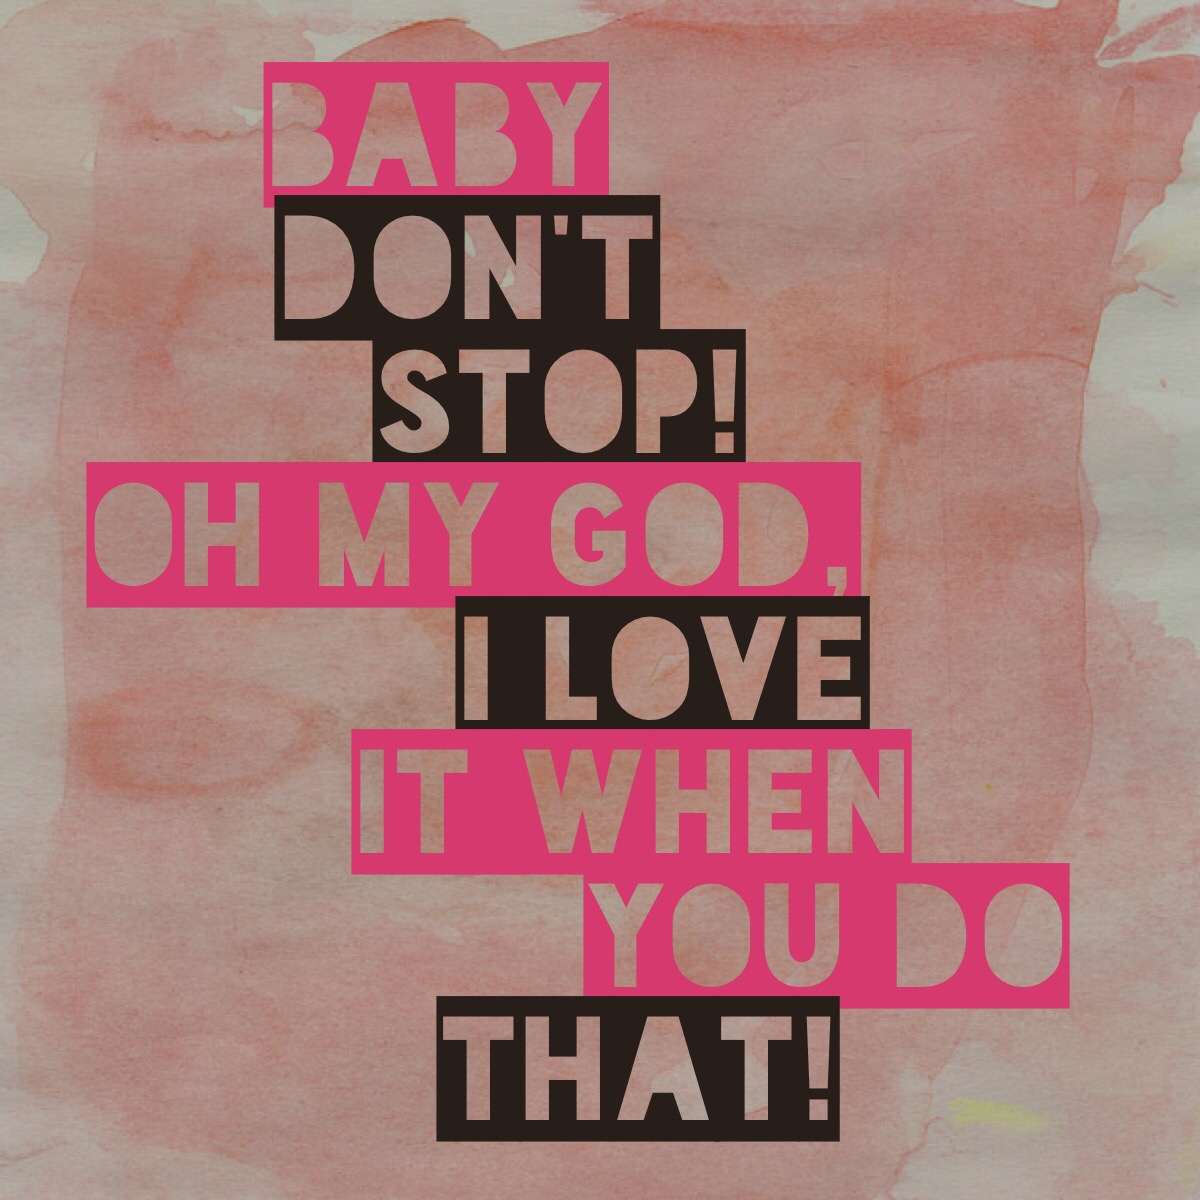 Baby, dont stop please